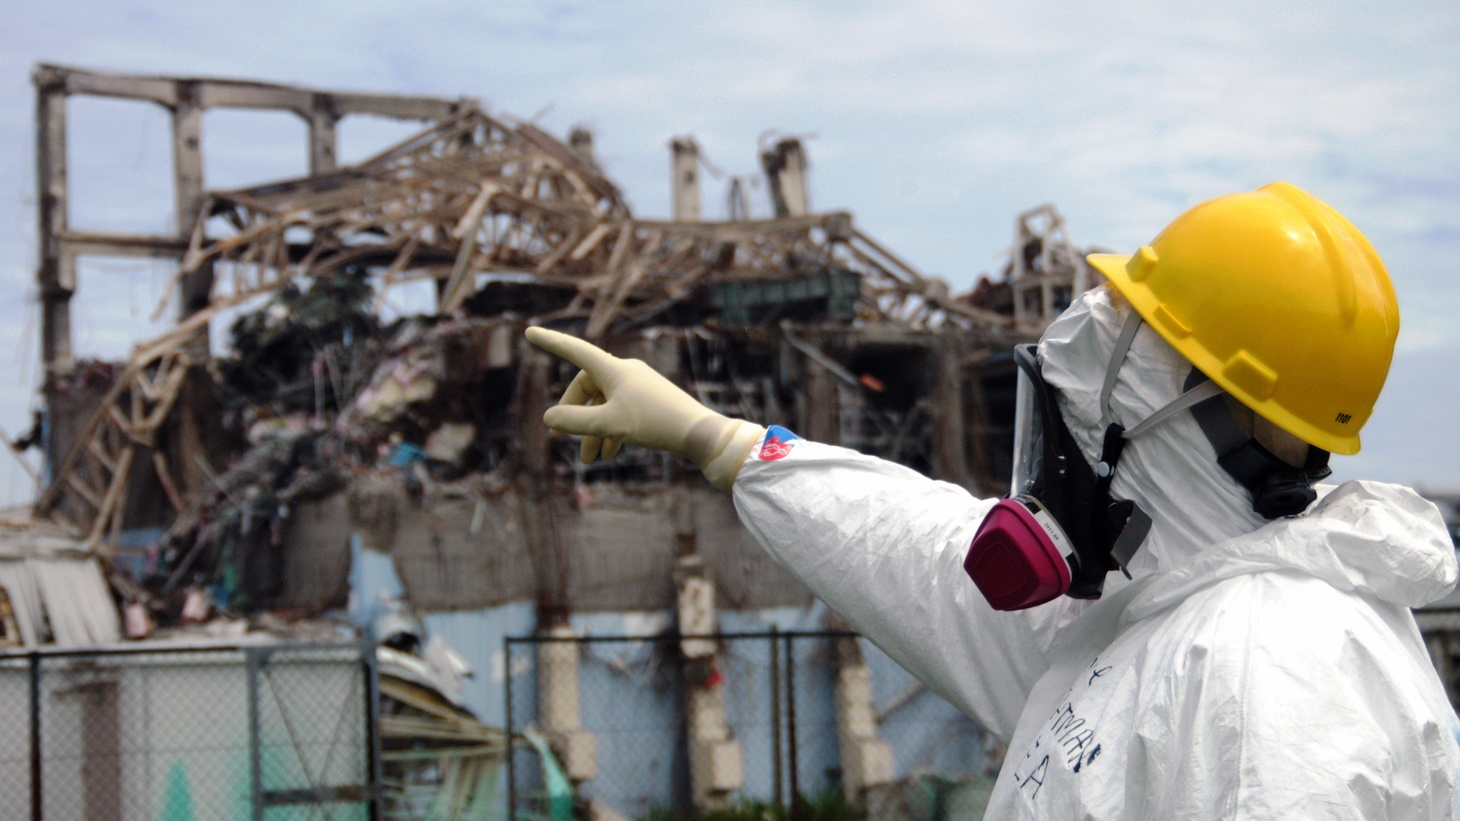 IAEA fact-finding team leader Mike Weightman examines Reactor Unit 3 at the Fukushima Daiichi Nuclear Power Plant on 27 May 2011 to assess tsunami damage and study nuclear safety lessons that could be learned from the accident.